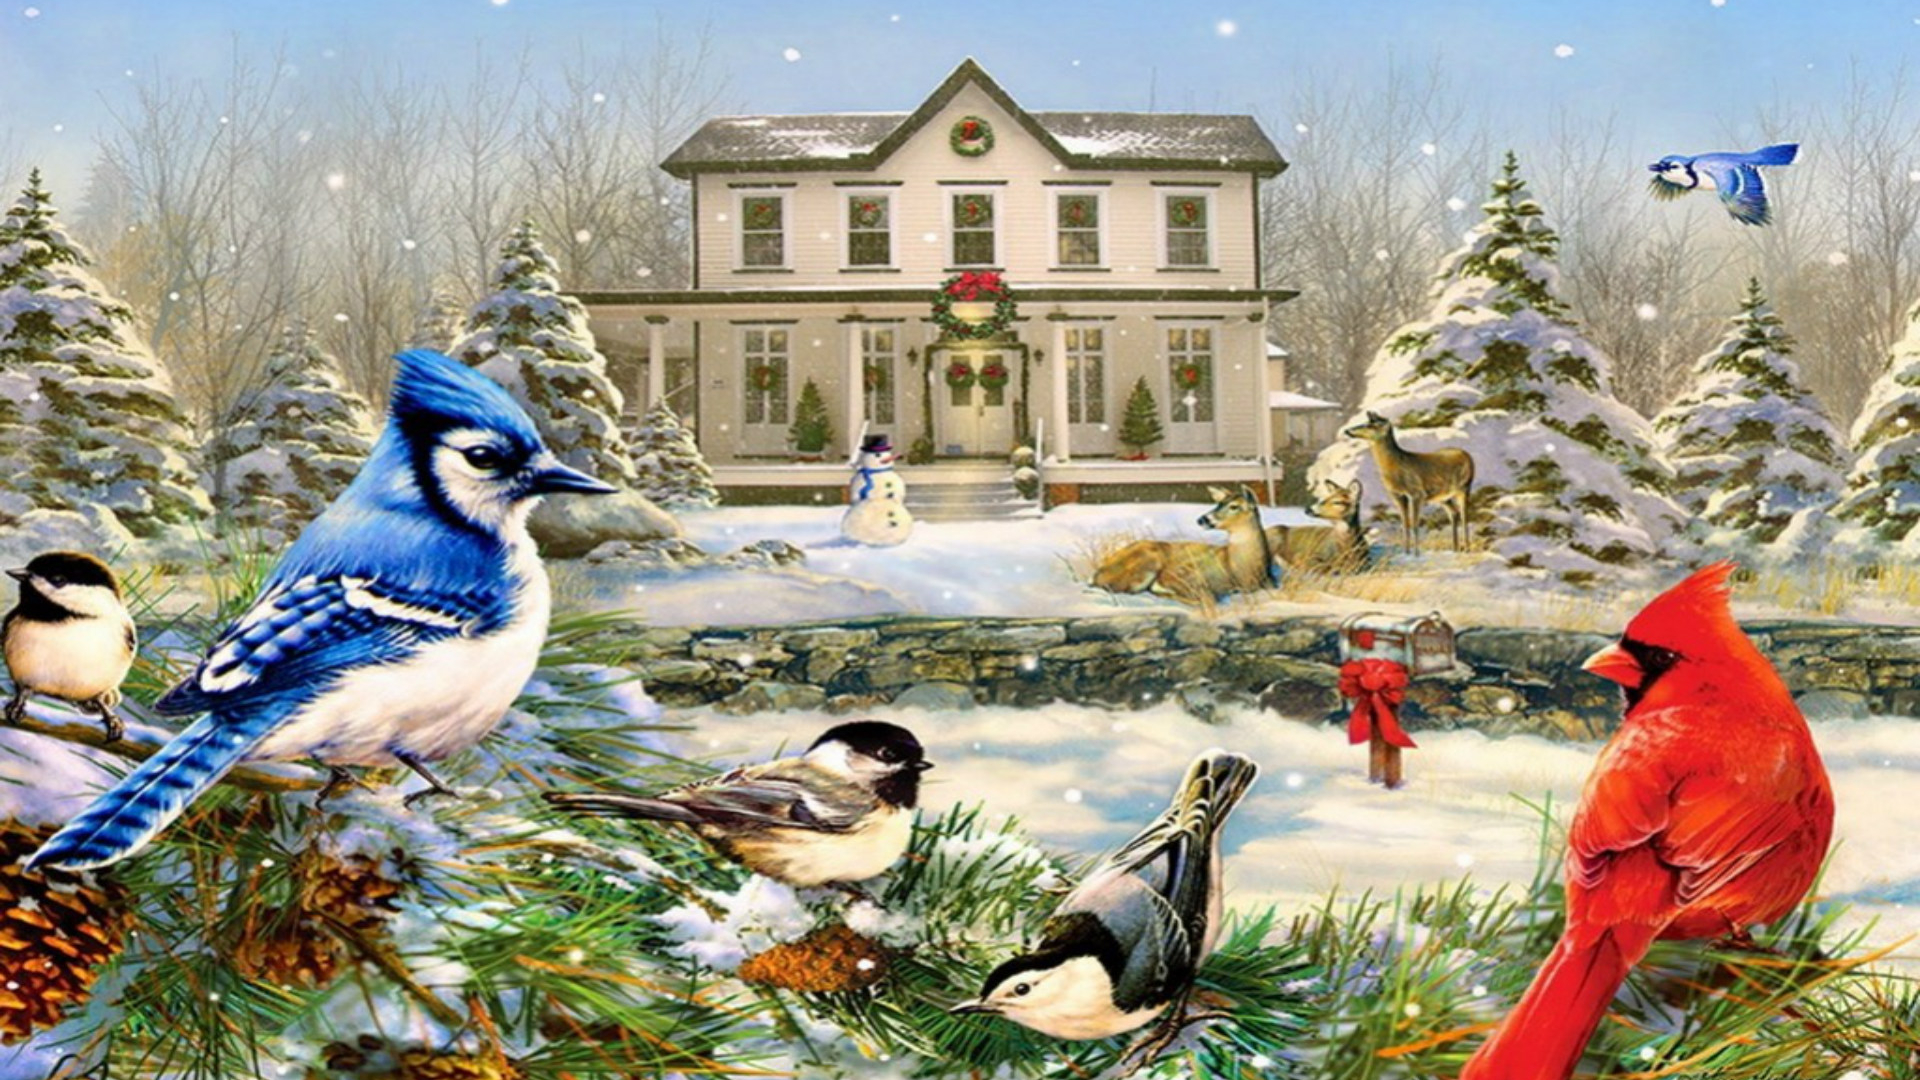 Old Fashioned Christmas Wallpapers Merry Christmas 1920x1200. Download resolutions: Desktop: 1920x1080 ...